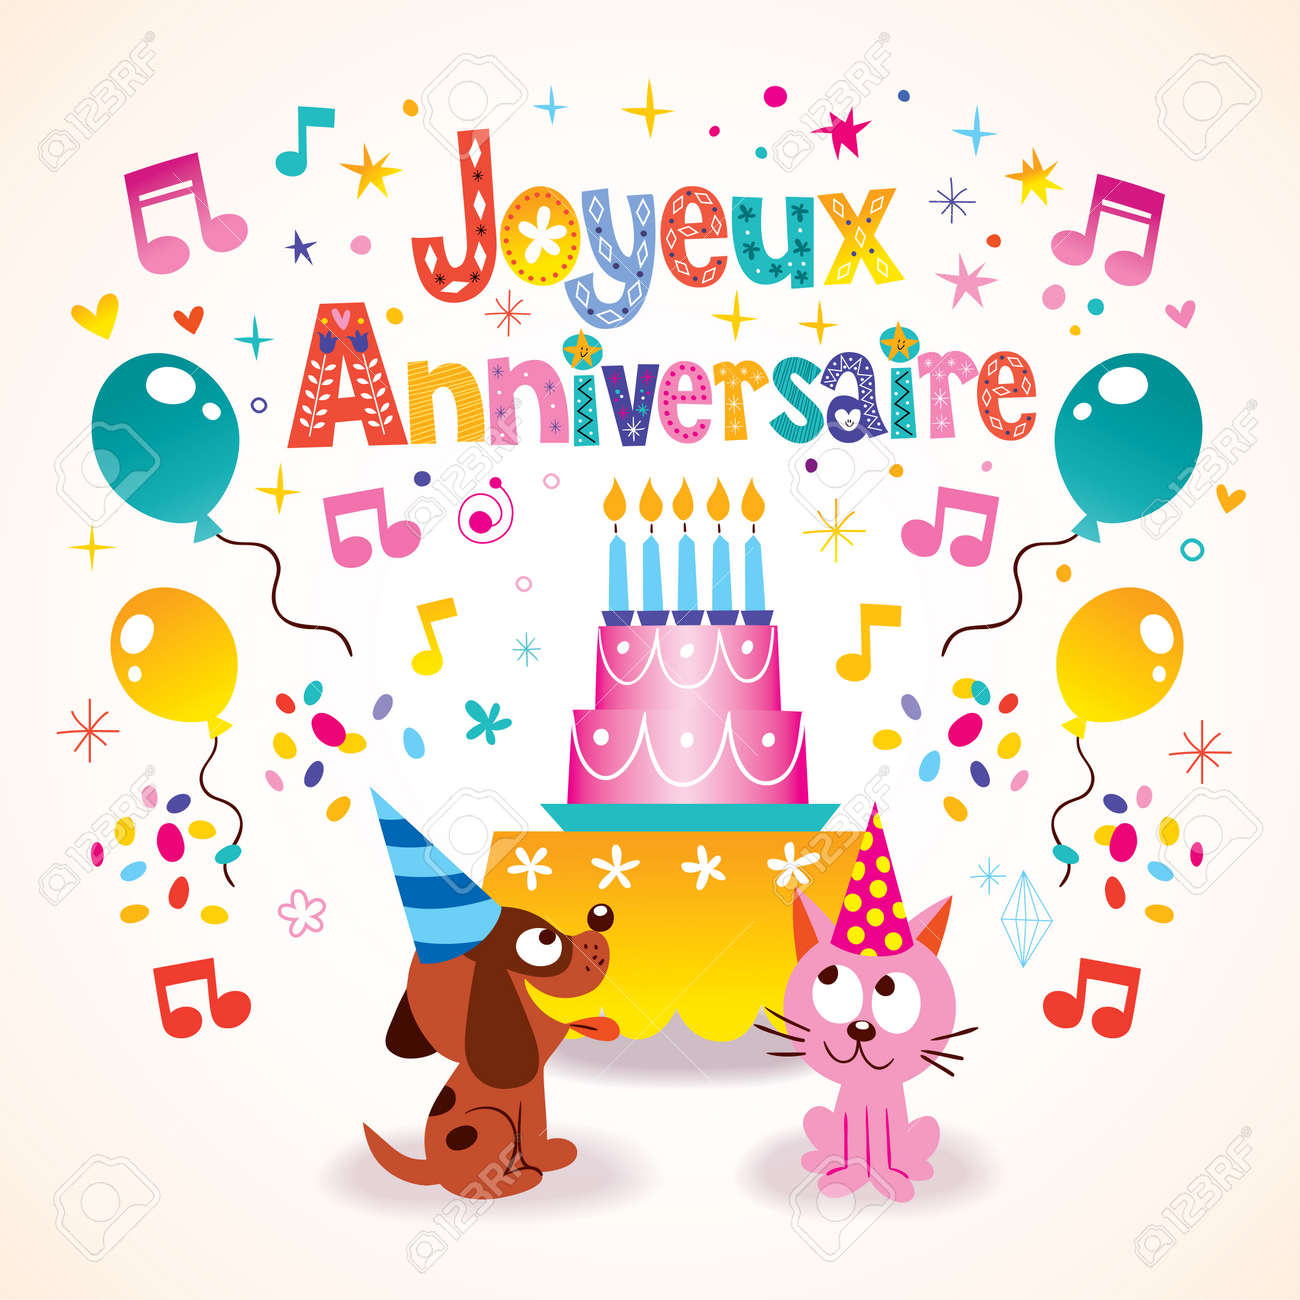 Joyeux Anniversaire Happy Birthday In French Kids Greeting Card Royalty Free Cliparts Vectors And Stock Illustration Image 59015327